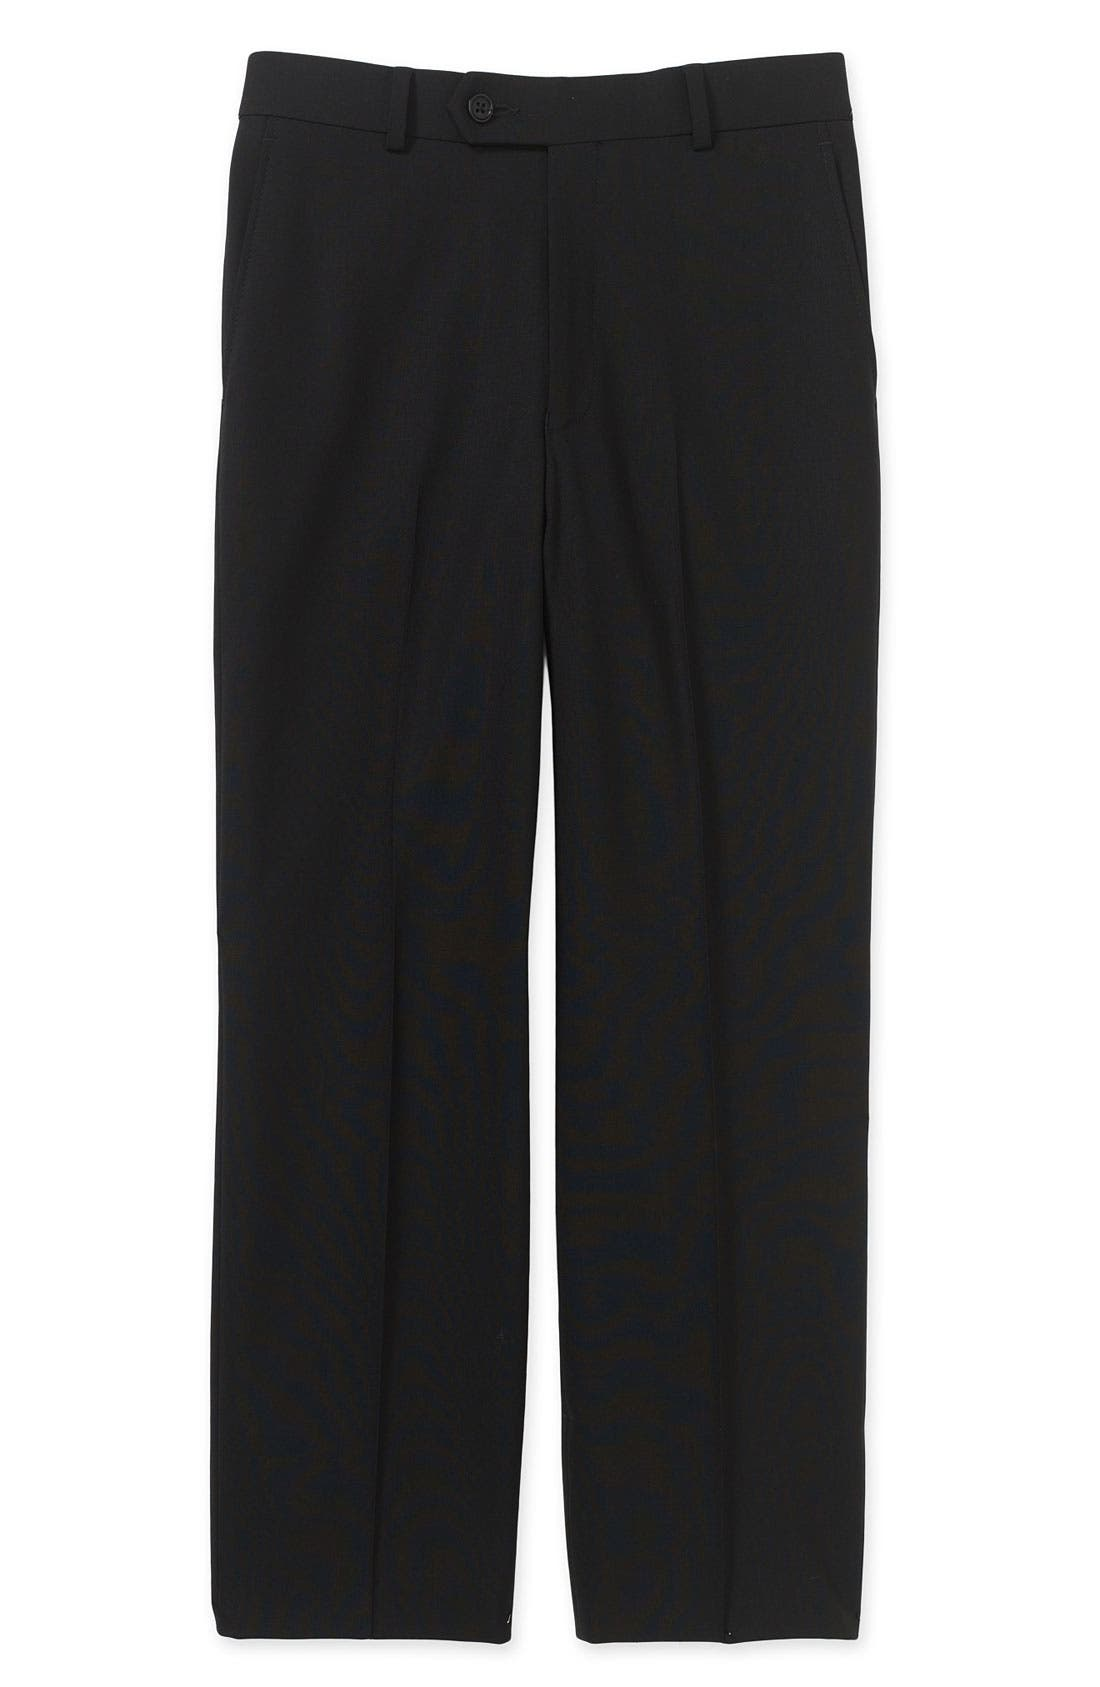 Alternate Image 1 Selected - Joseph Abboud Dress Pants (Big Boys Husky)